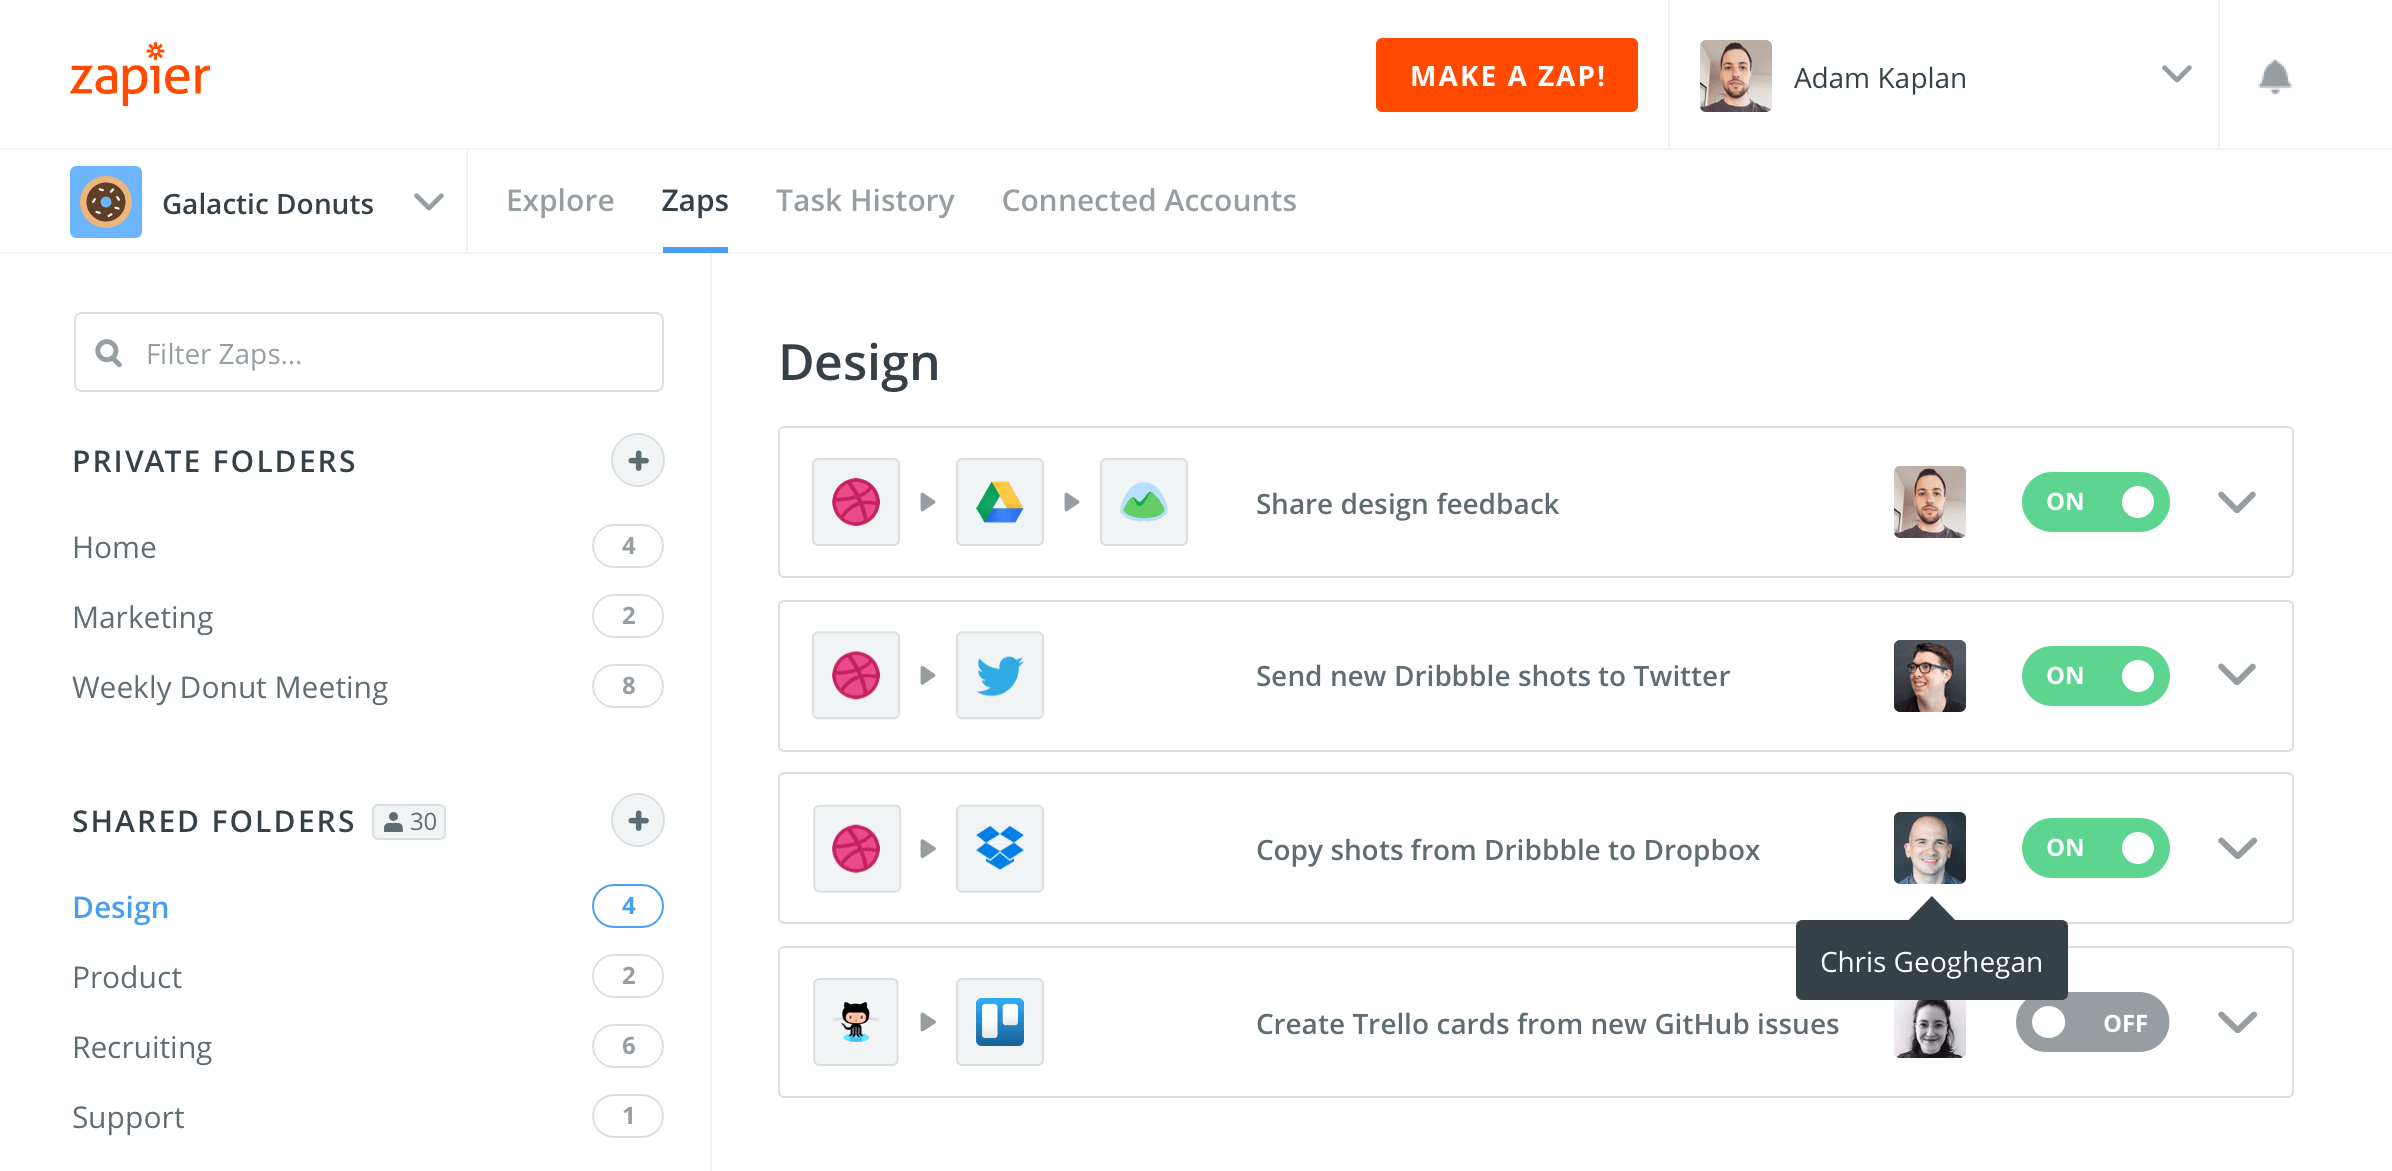 When looking at your Zaps, the profile photo of the owner of the Zap shows up.